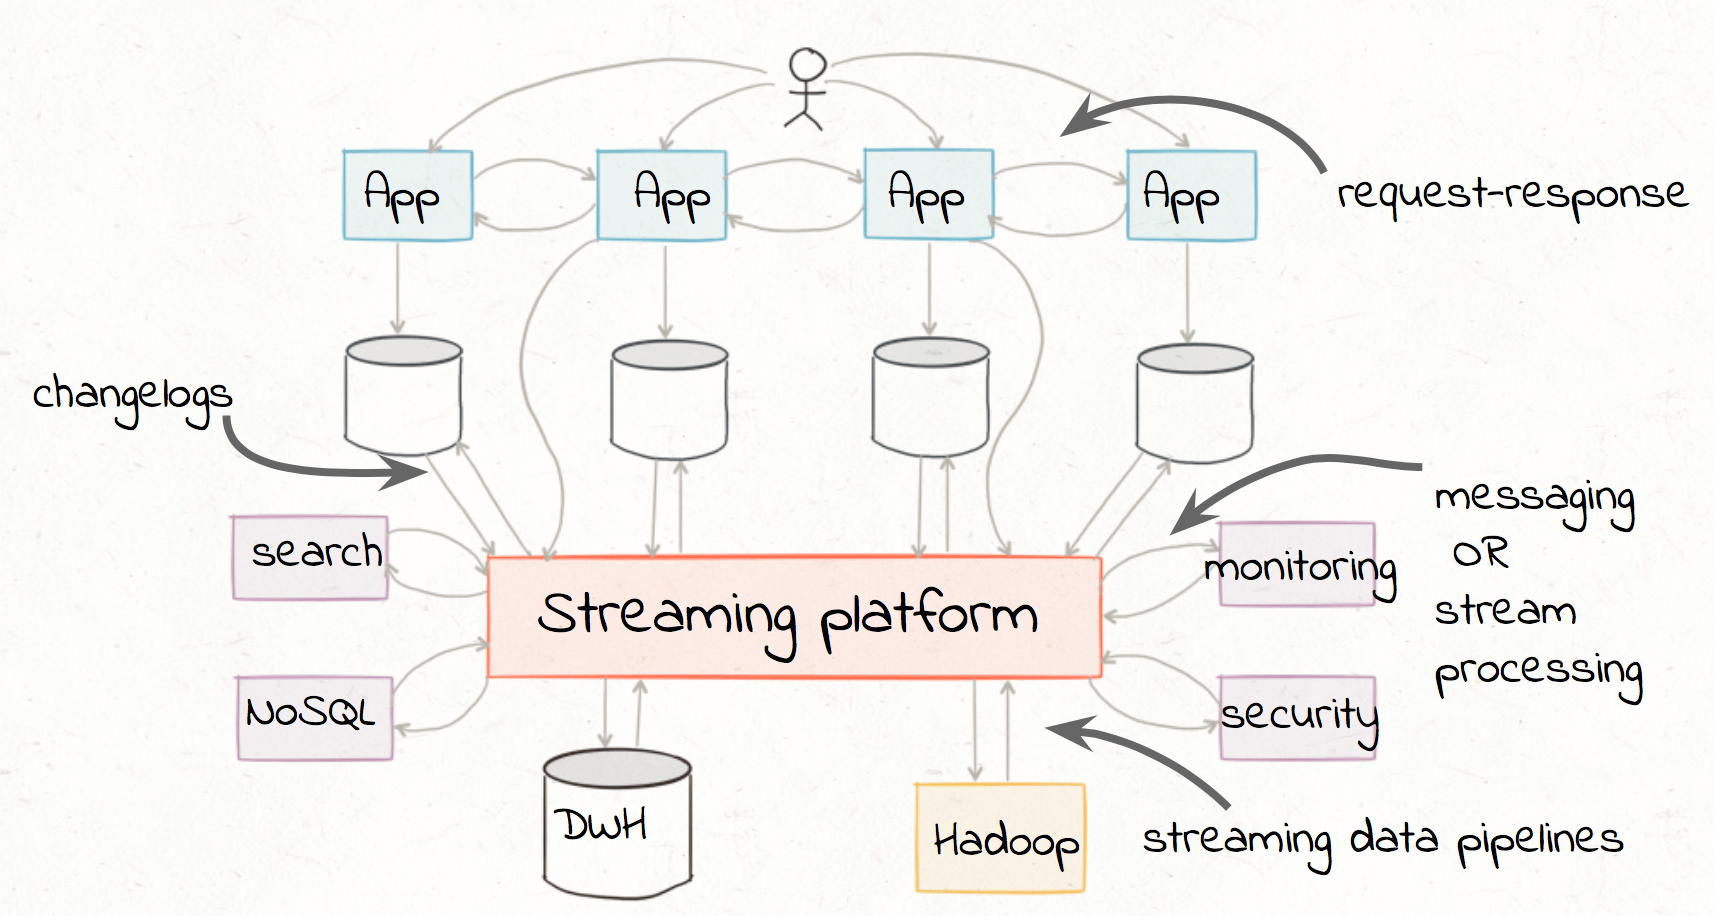 Building a Real-Time Streaming ETL Pipeline in 20 Minutes